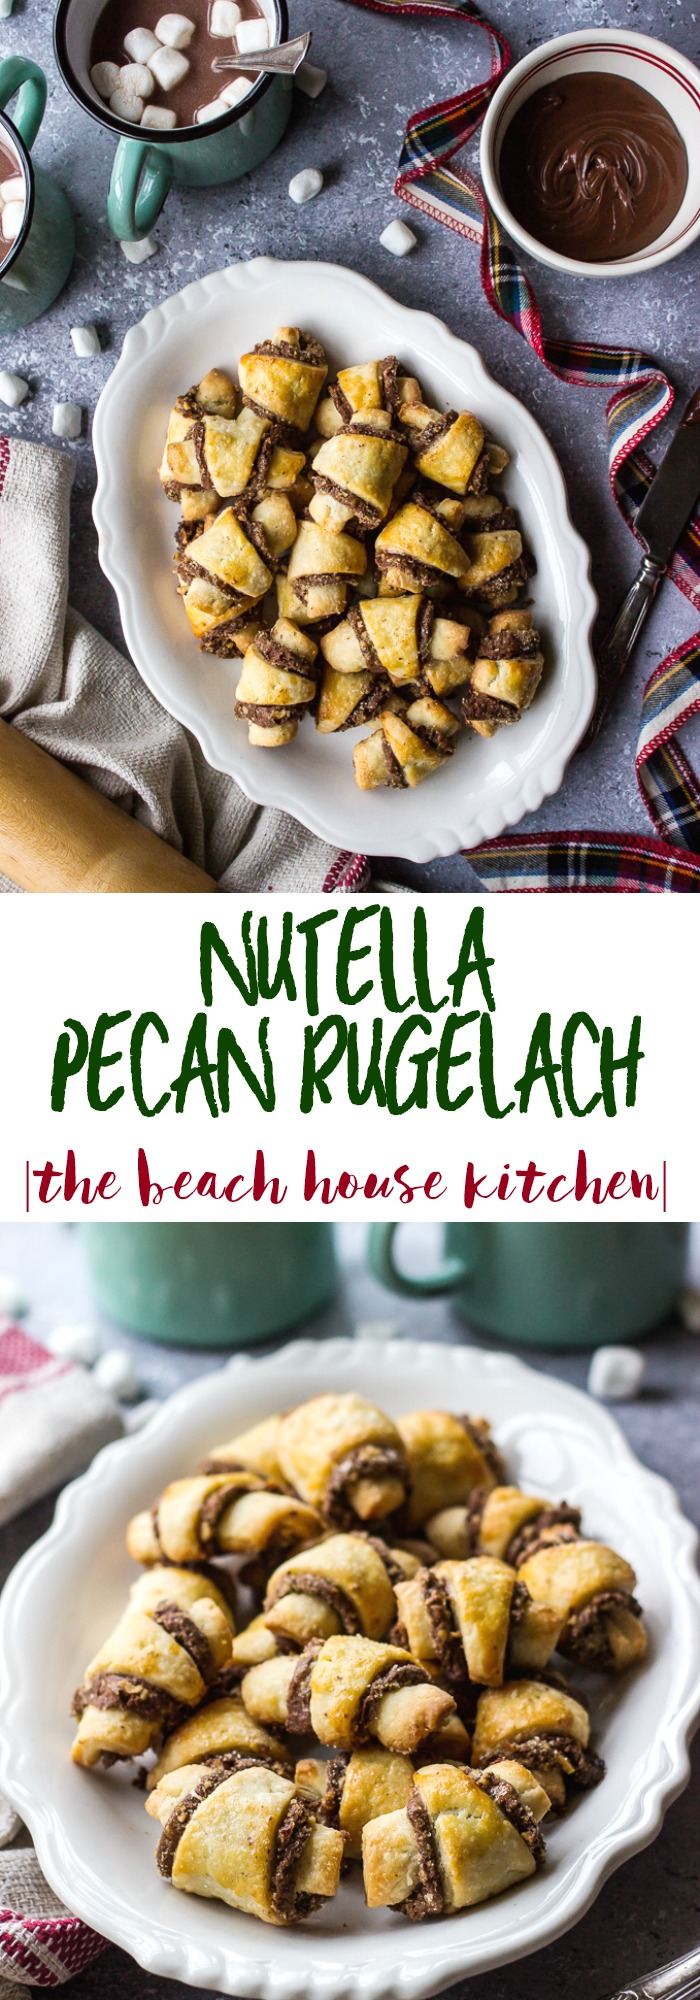 Nutella pecan rugelach the beach house kitchen for The pecan house